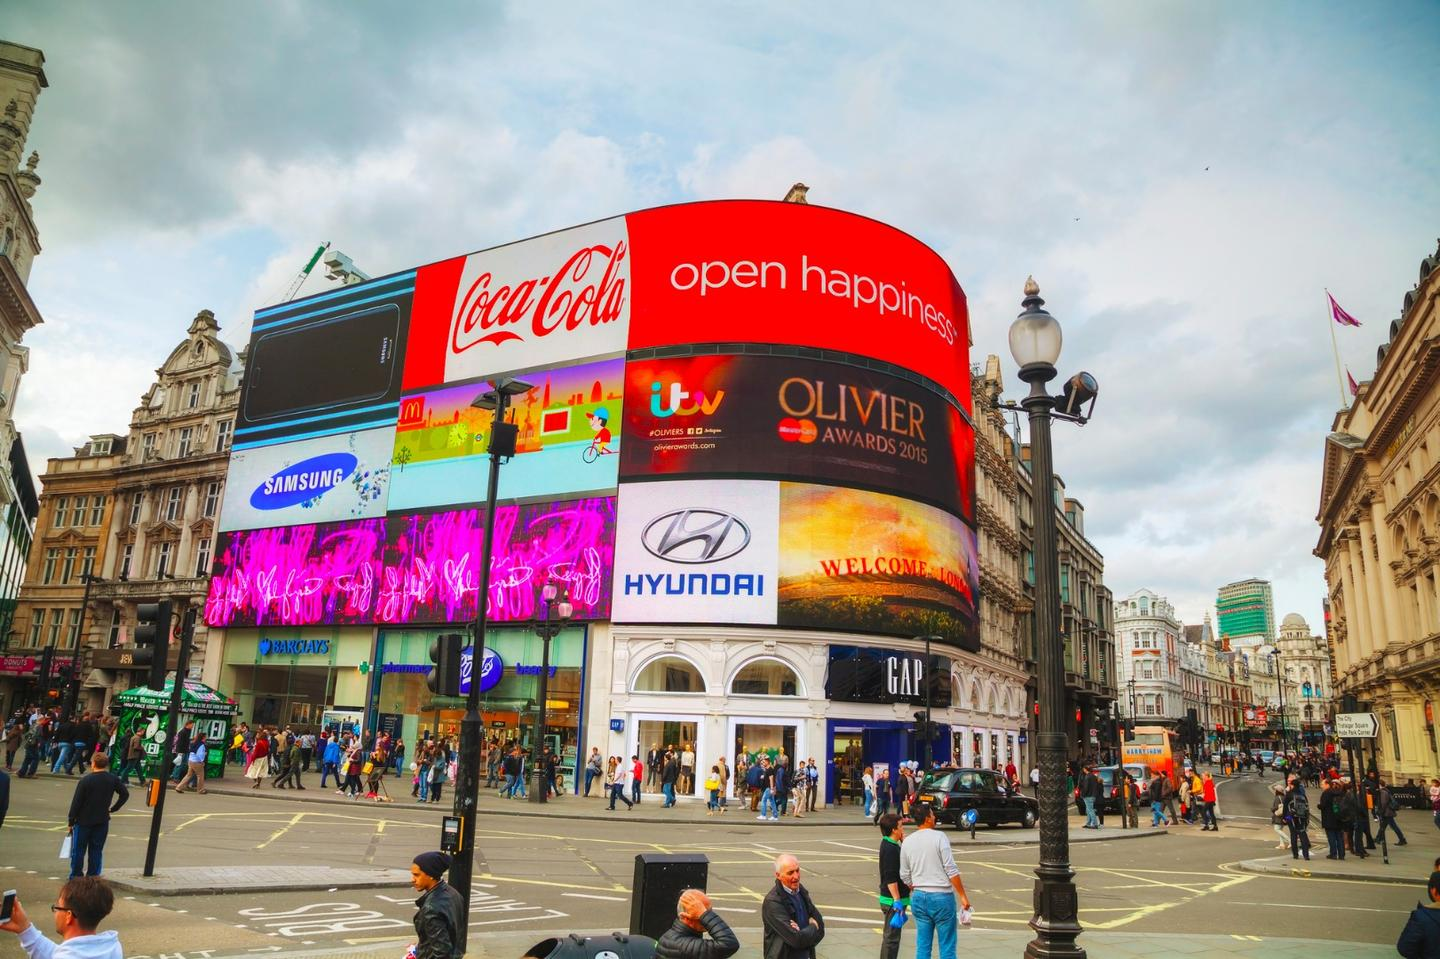 The current adverts in Piccadilly Circus will be replaced by a massive 17.56 m high by 44.62 m wide LED screen